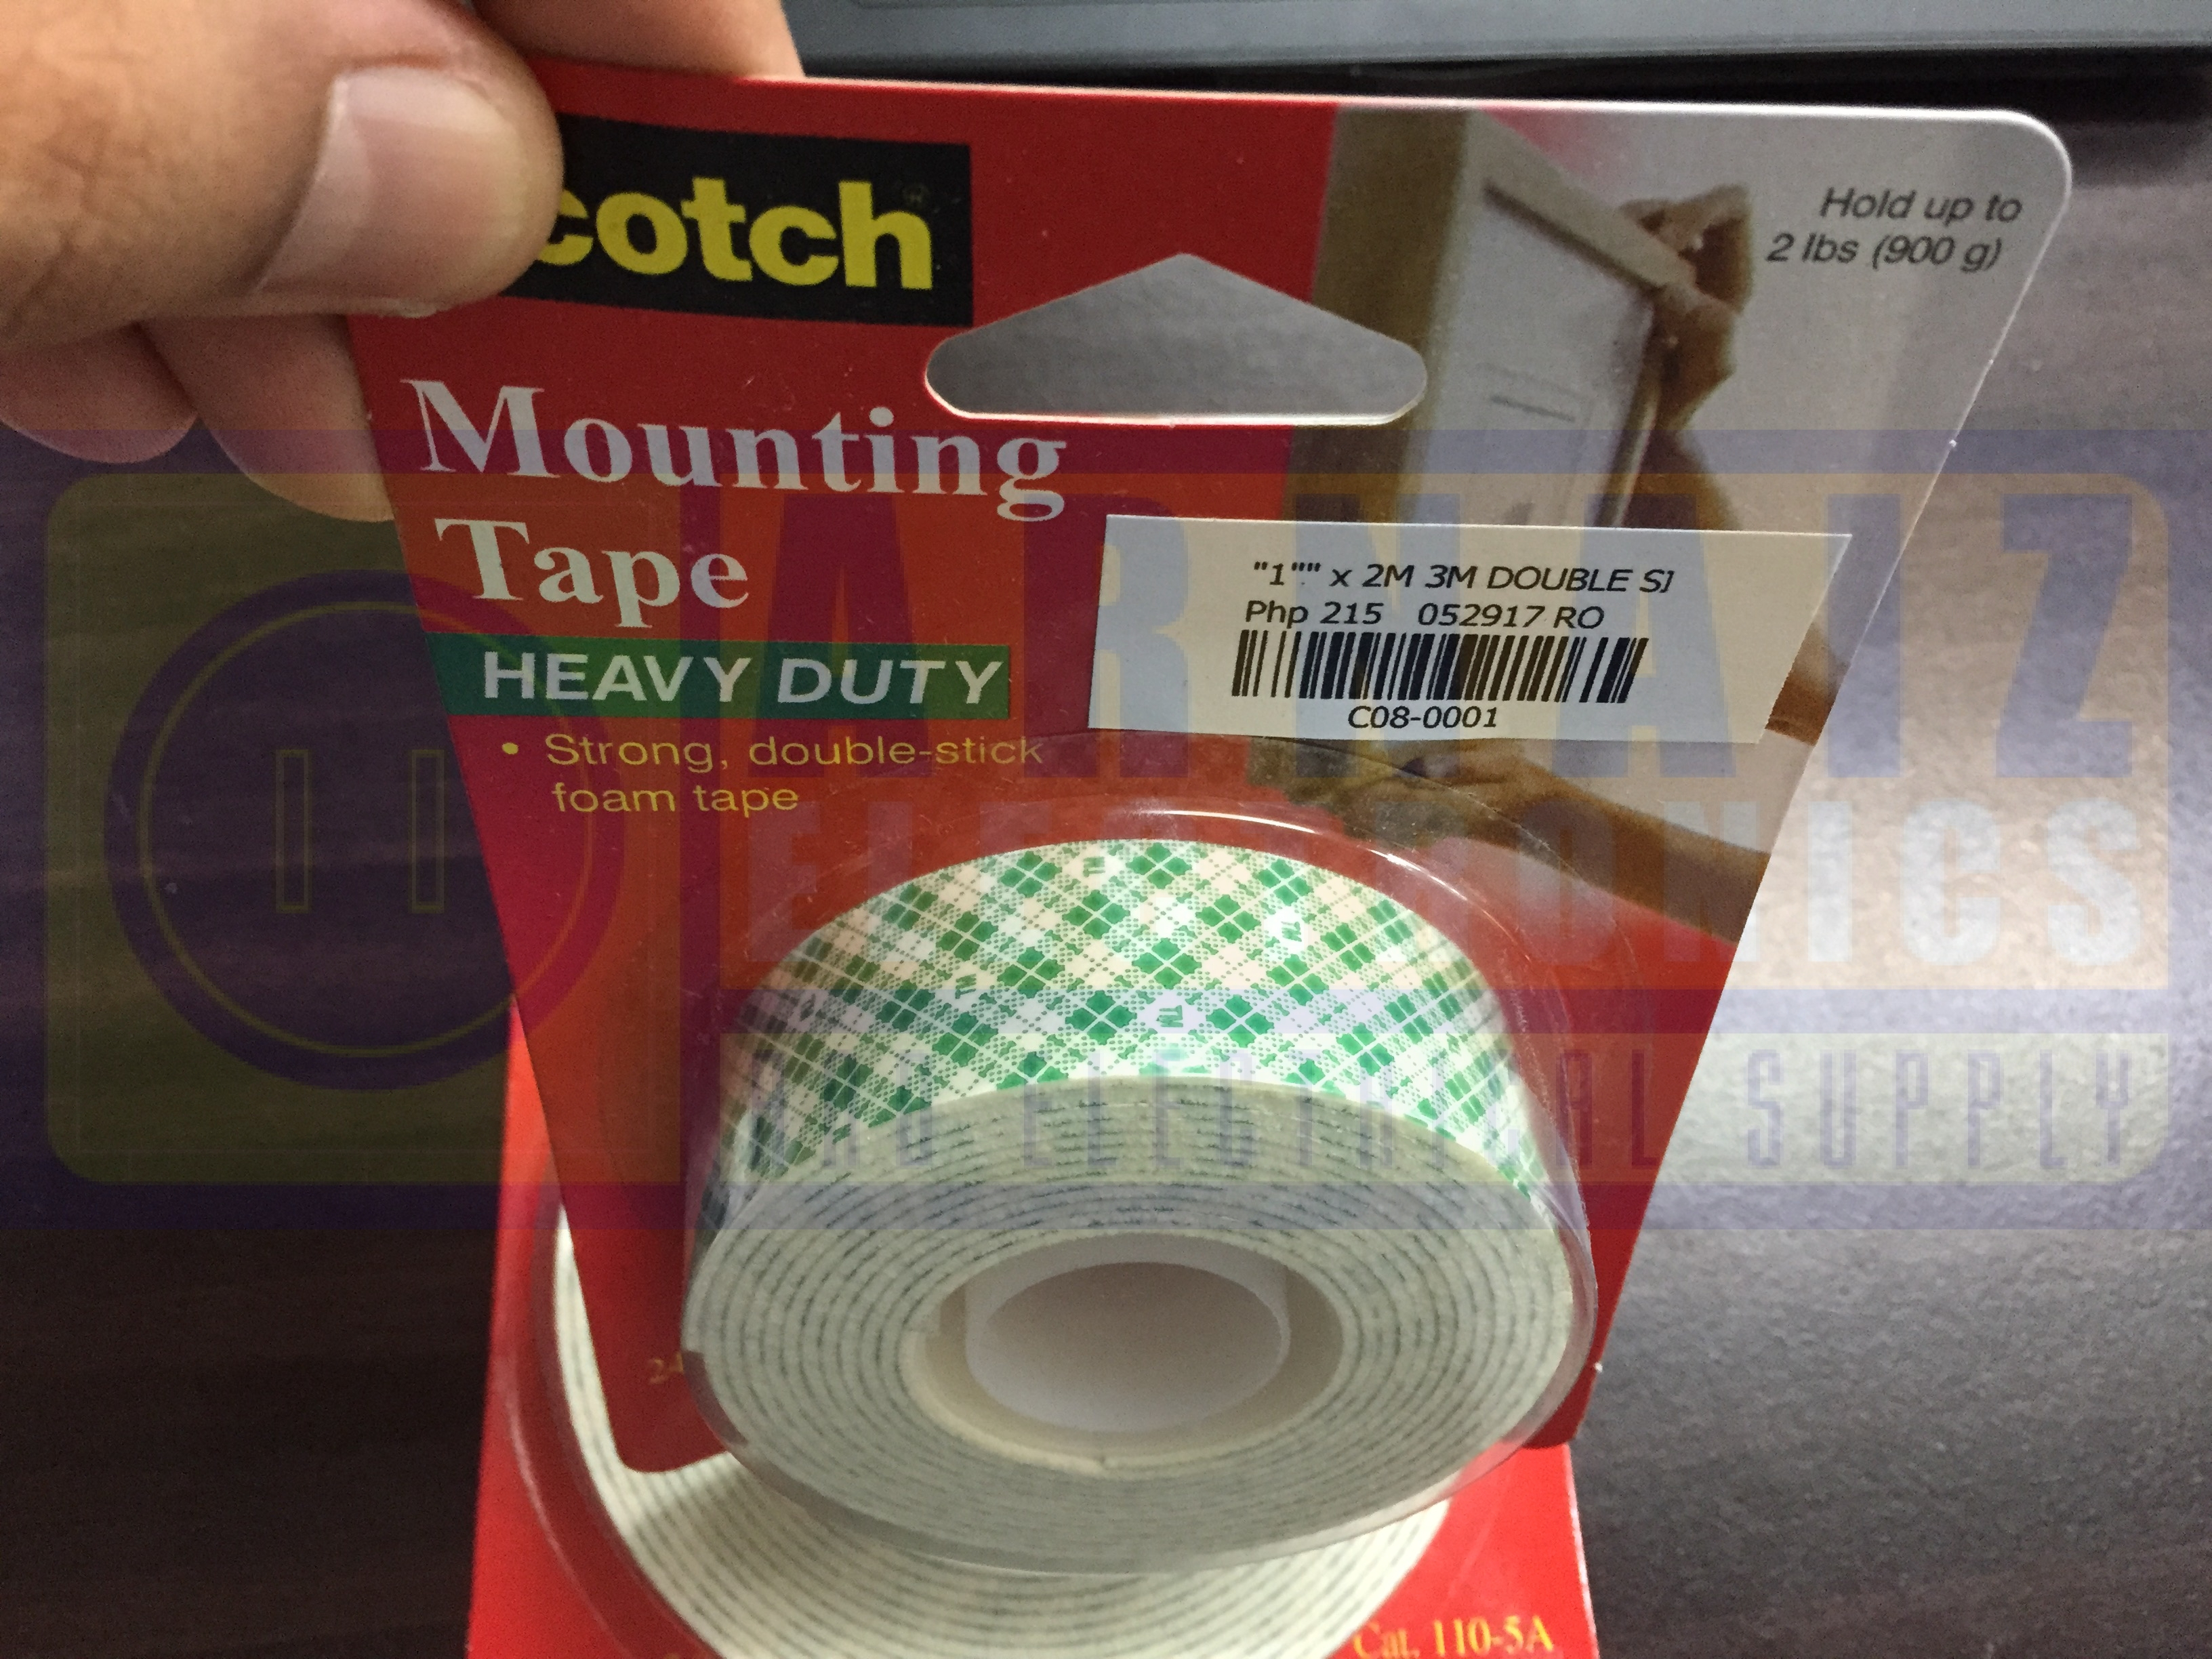 3m Structural Bonding Tape : M double sided tape green scotch mounting bonding